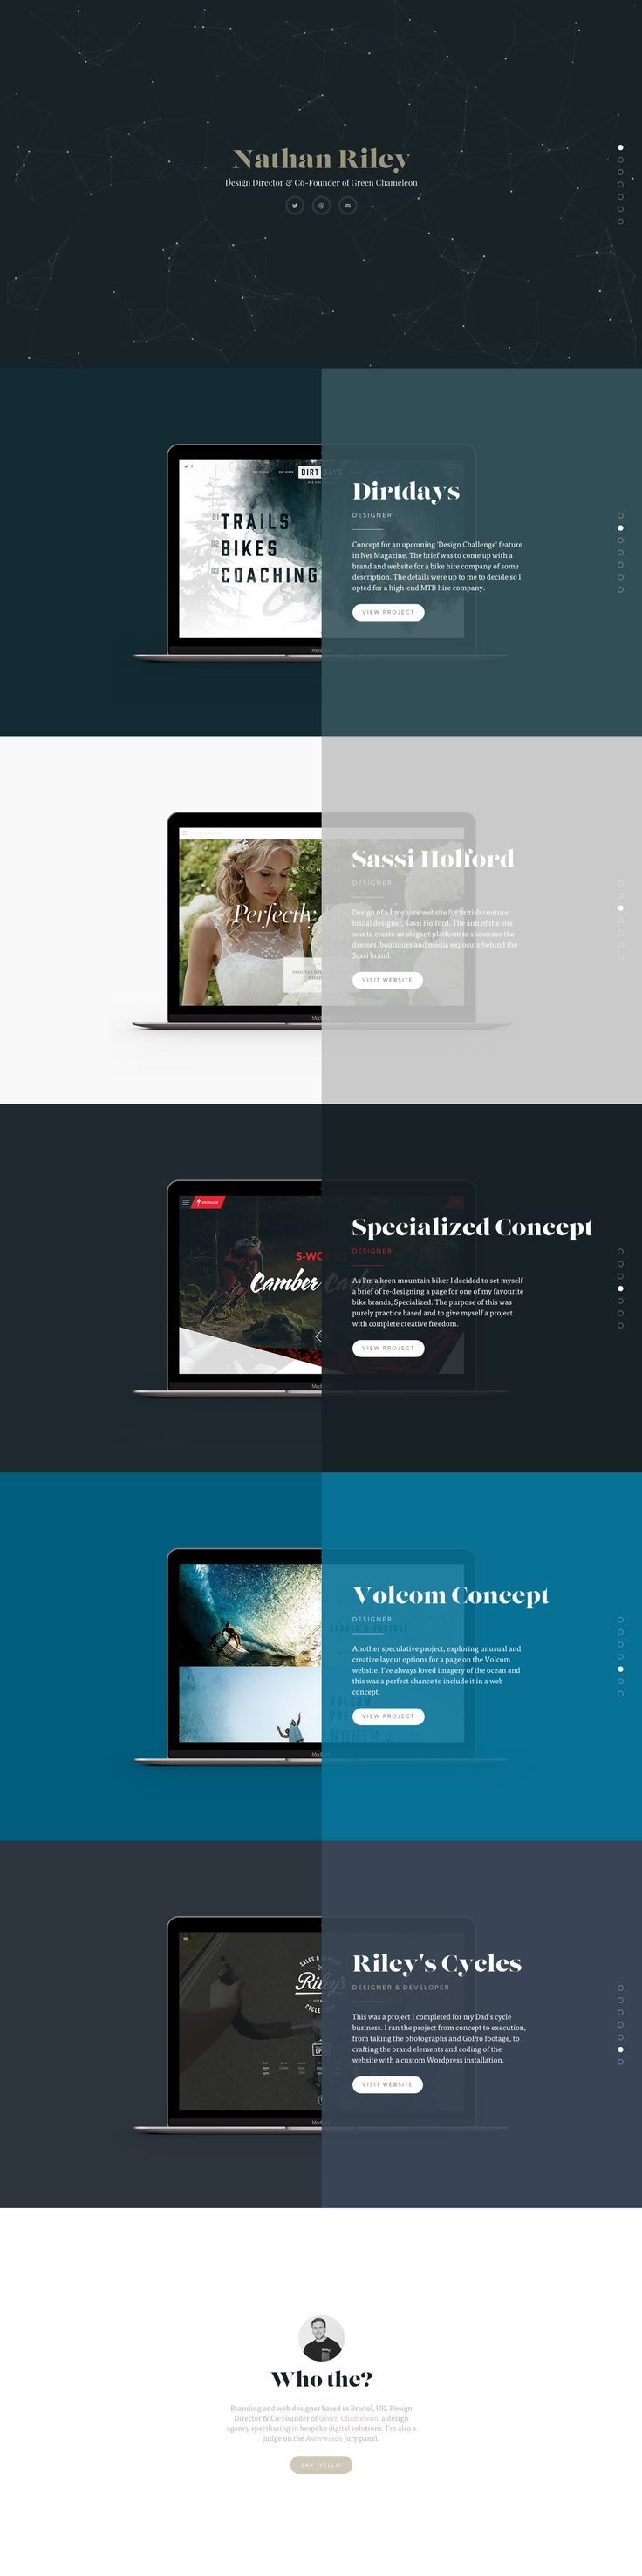 responsive web design tutorial with examples